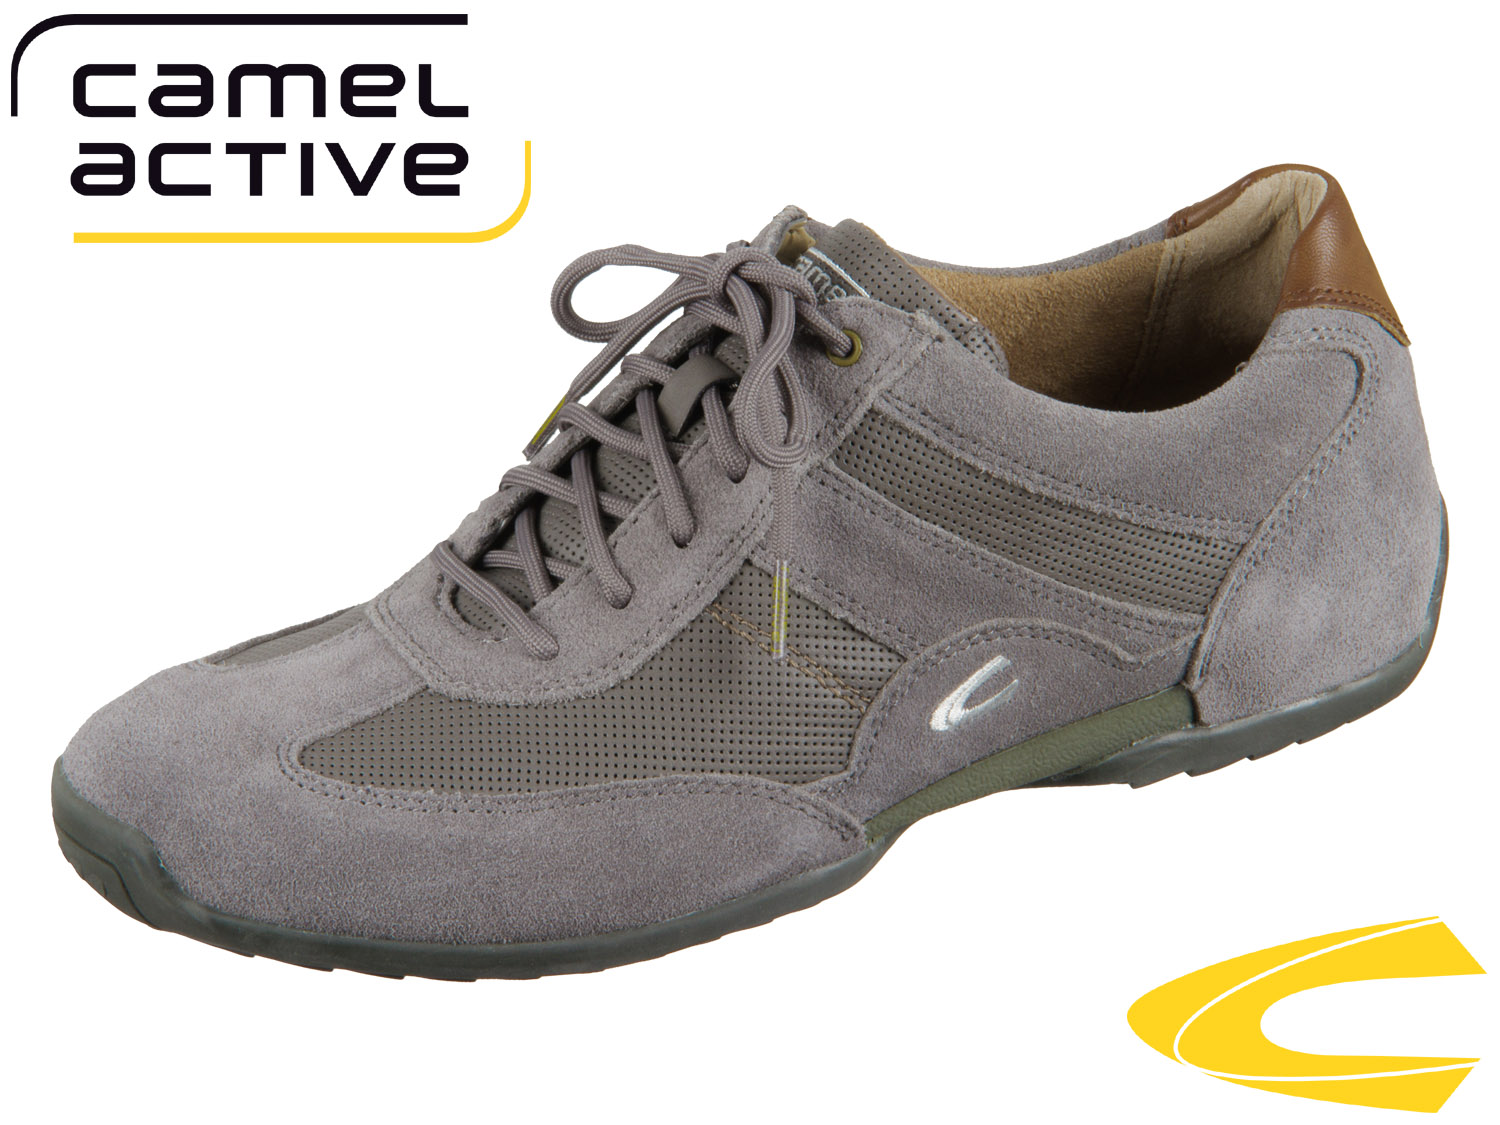 1027f7972223 camel active Space 137.37-02 dk grey Oil Suede Synth Nappa